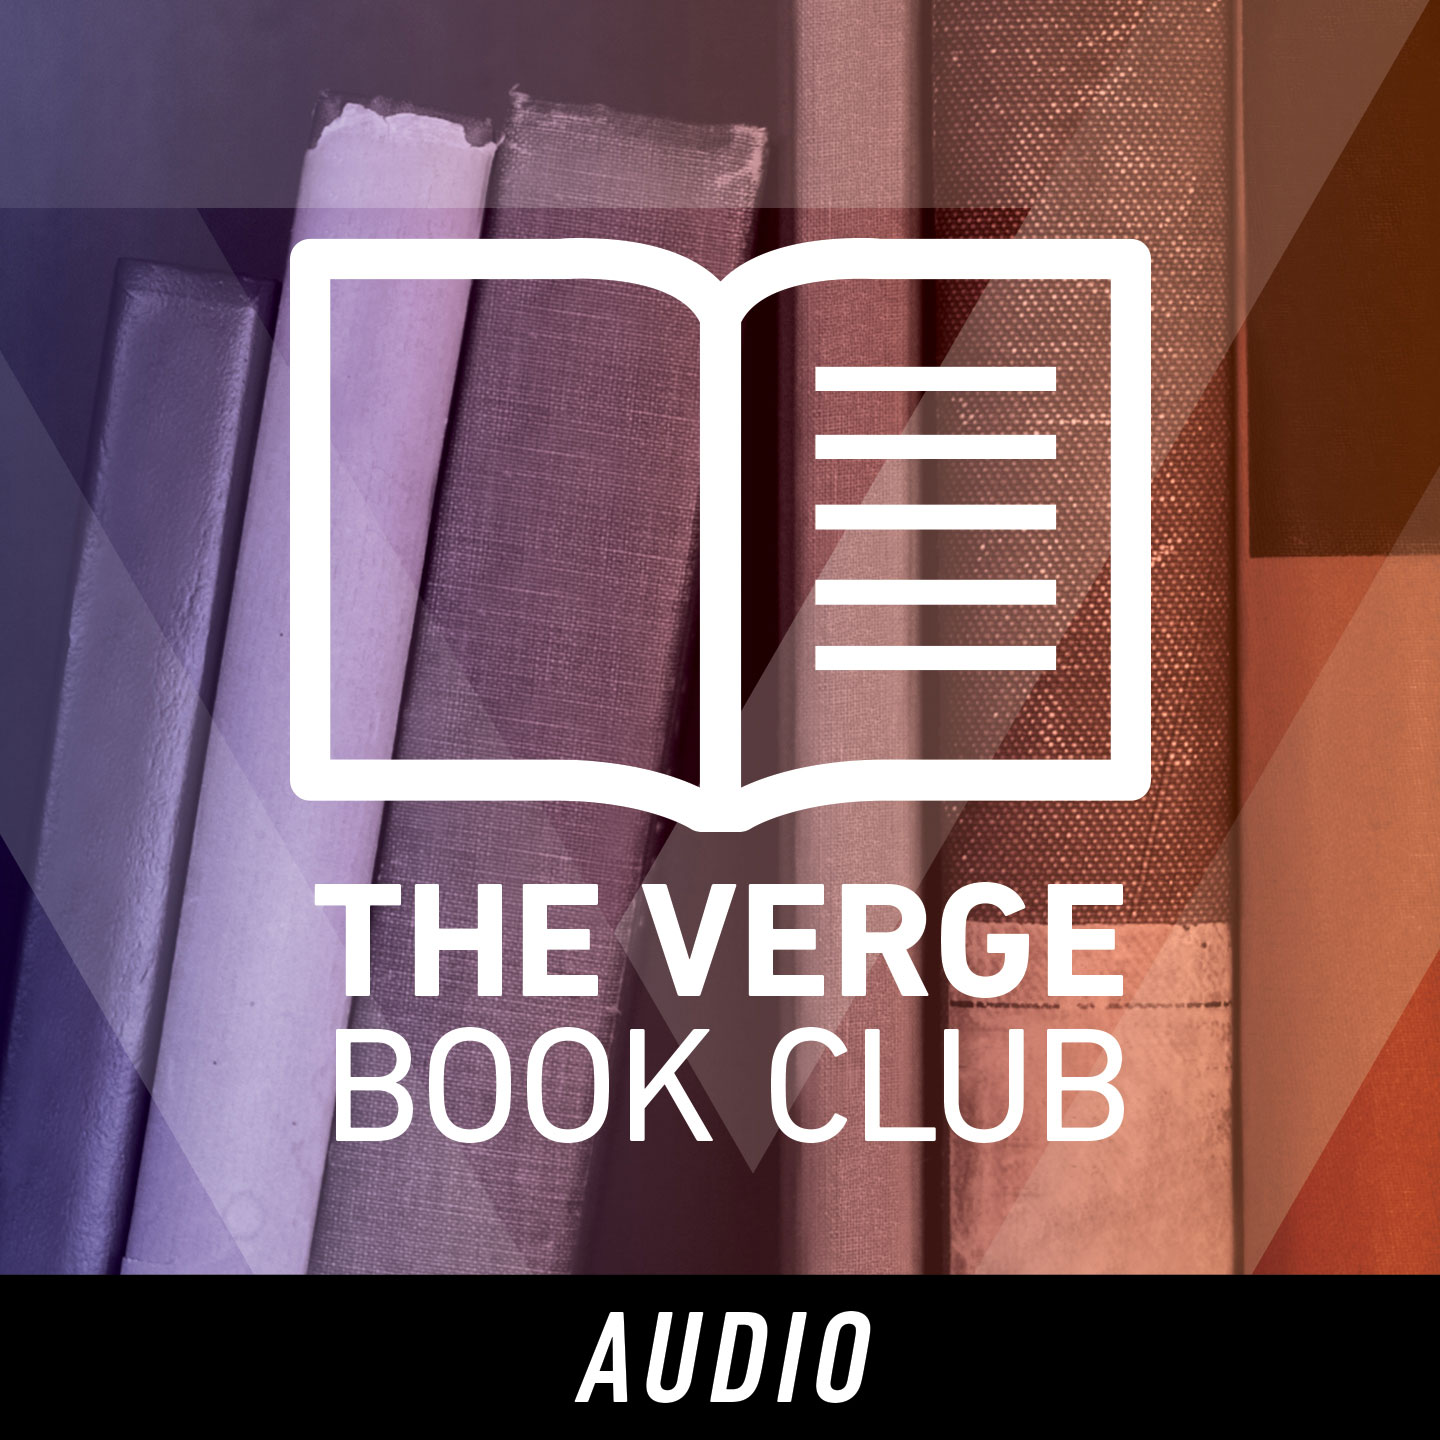 The Verge Book Club - Audio